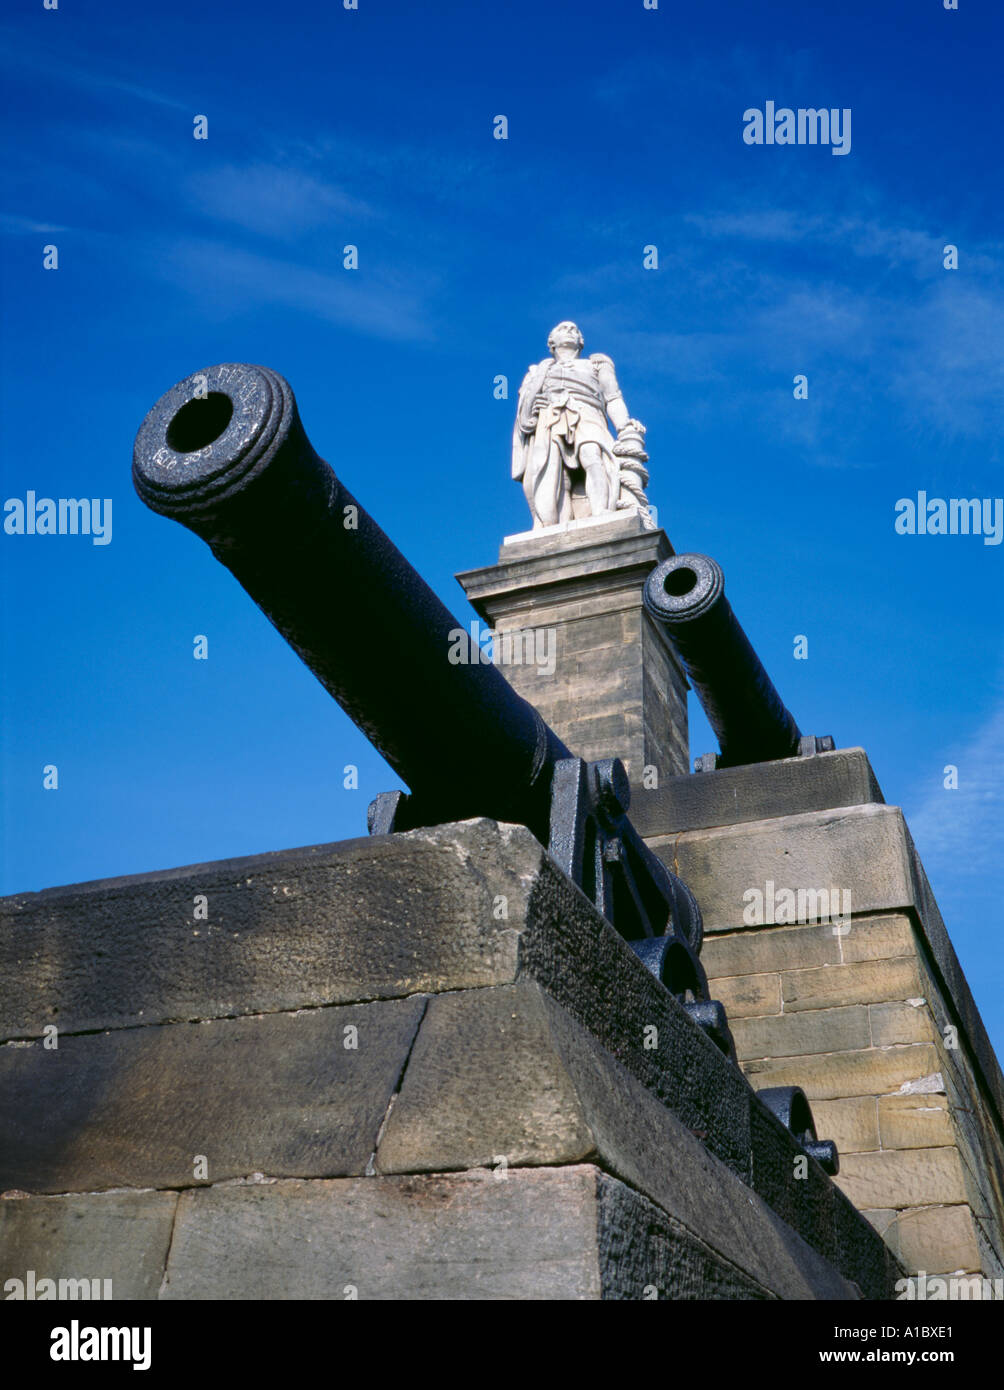 Monument to Admiral Lord Collingwood, Tynemouth, Tyne and Wear, England, UK. Stock Photo